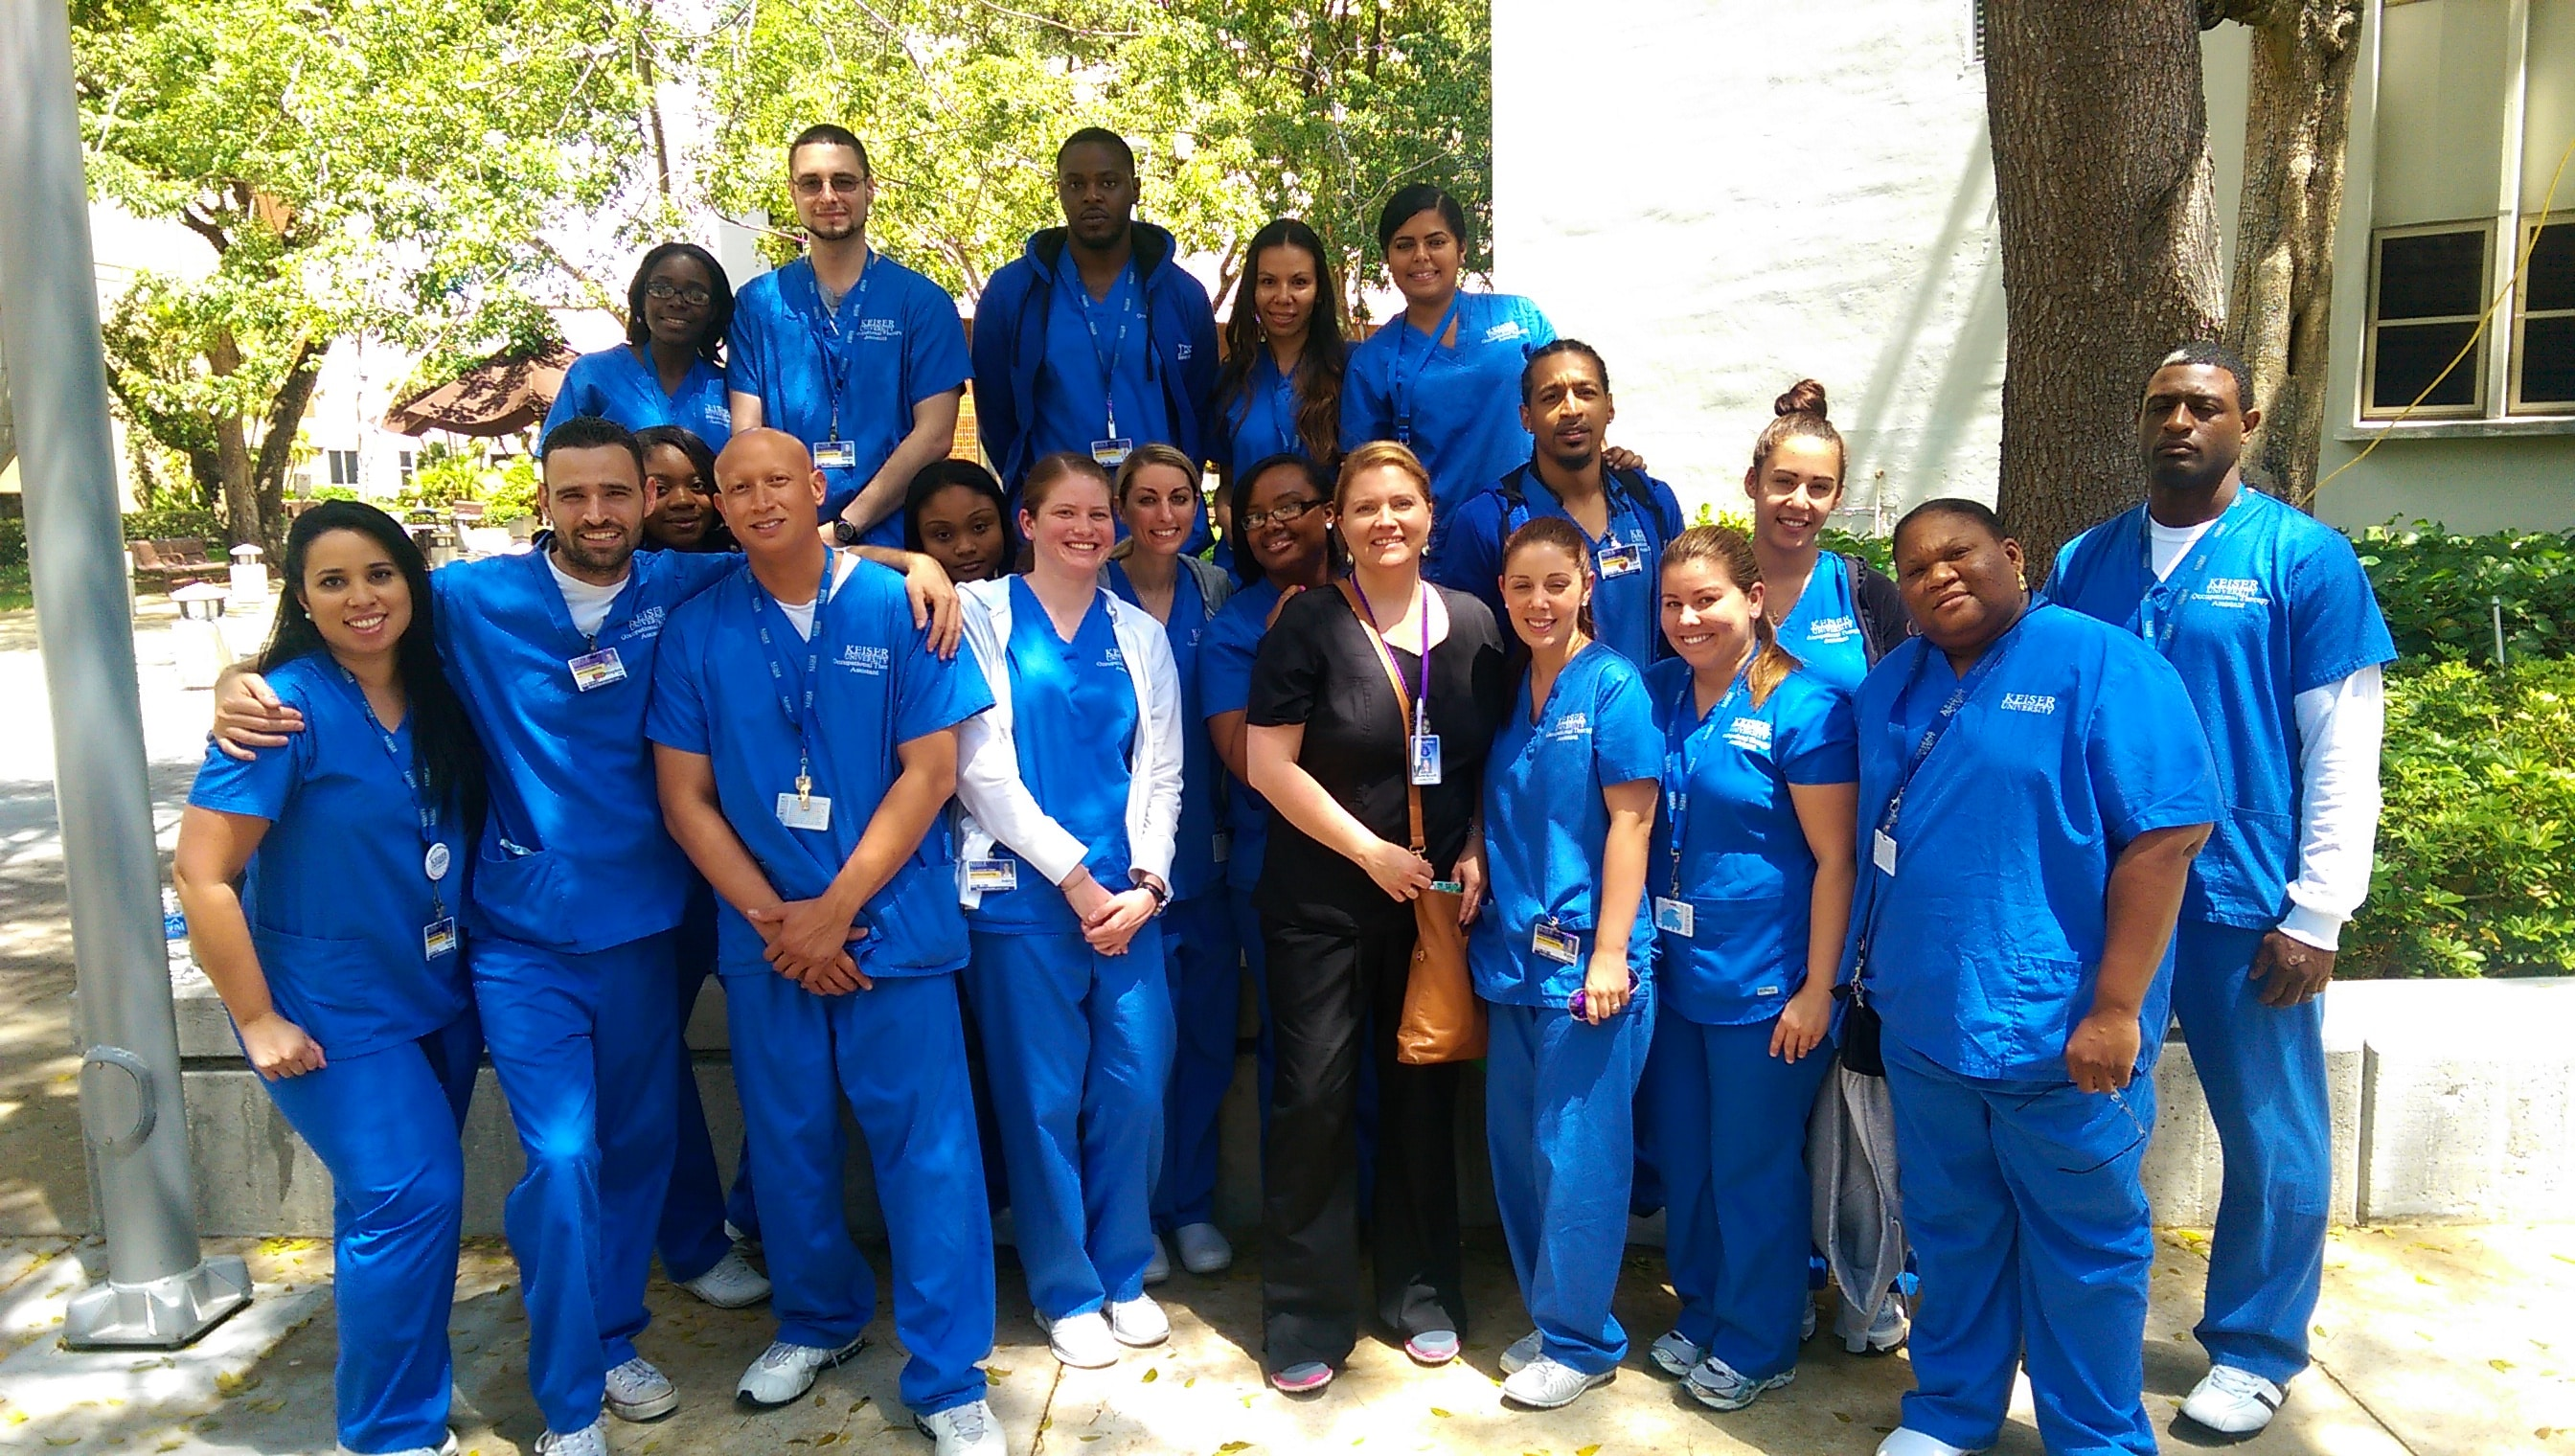 OTA Students from Ft. Lauderdale Visit Jackson Memorial Hospital